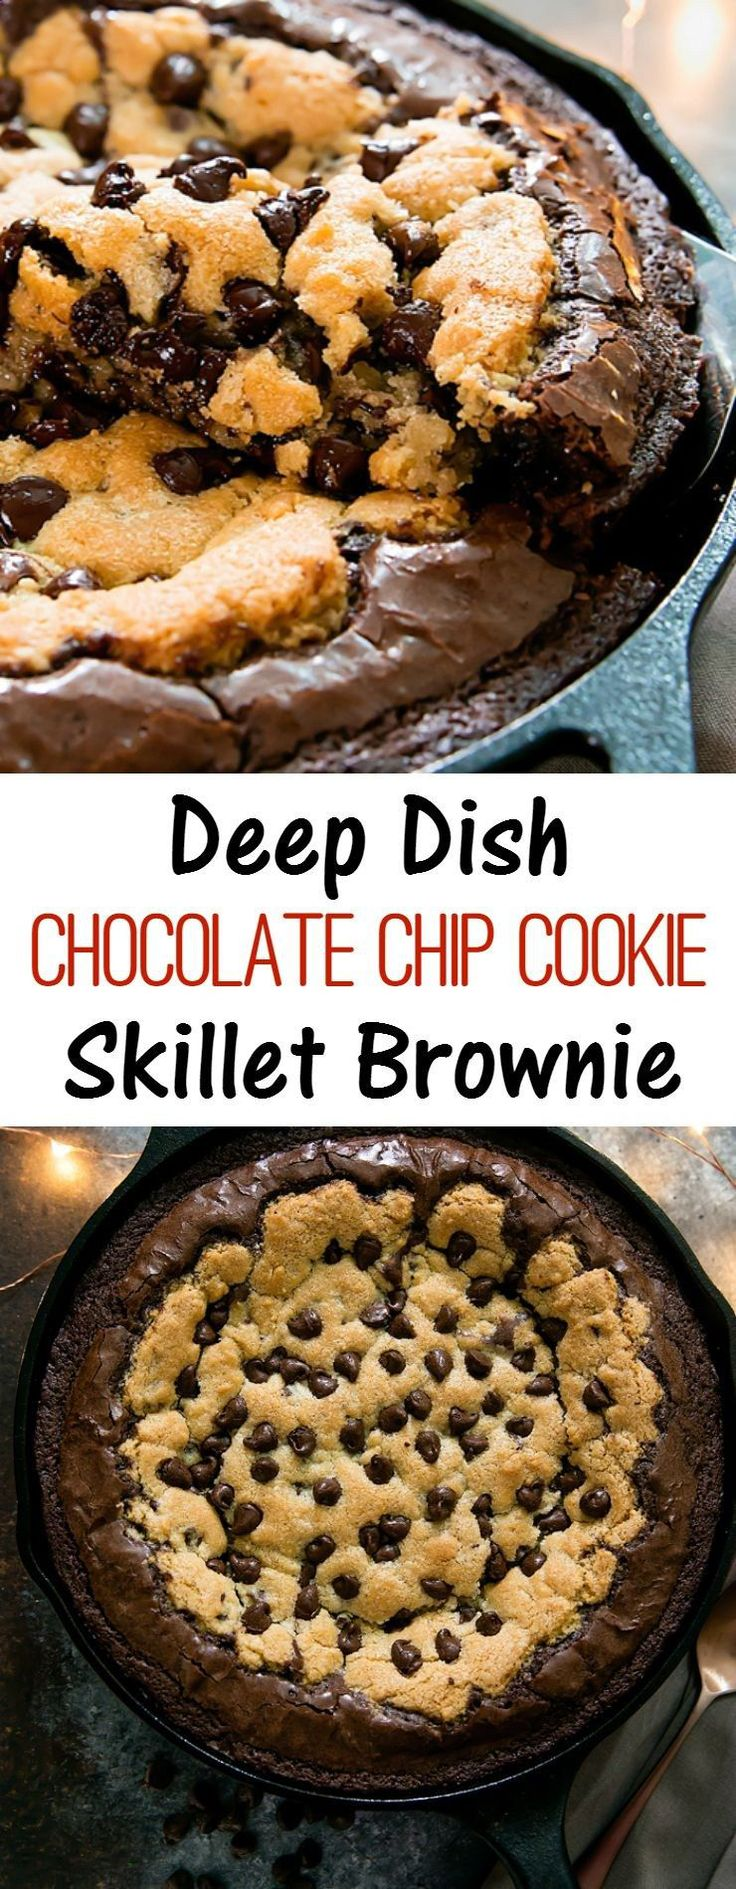 37 Best Cookies Images On Pinterest Baking And Treats Chocochips Elaine Dress Cream Beige M Deep Dish Chocolate Chip Cookie Skillet Brownie Combining Brownies Into One Decadent Dessert